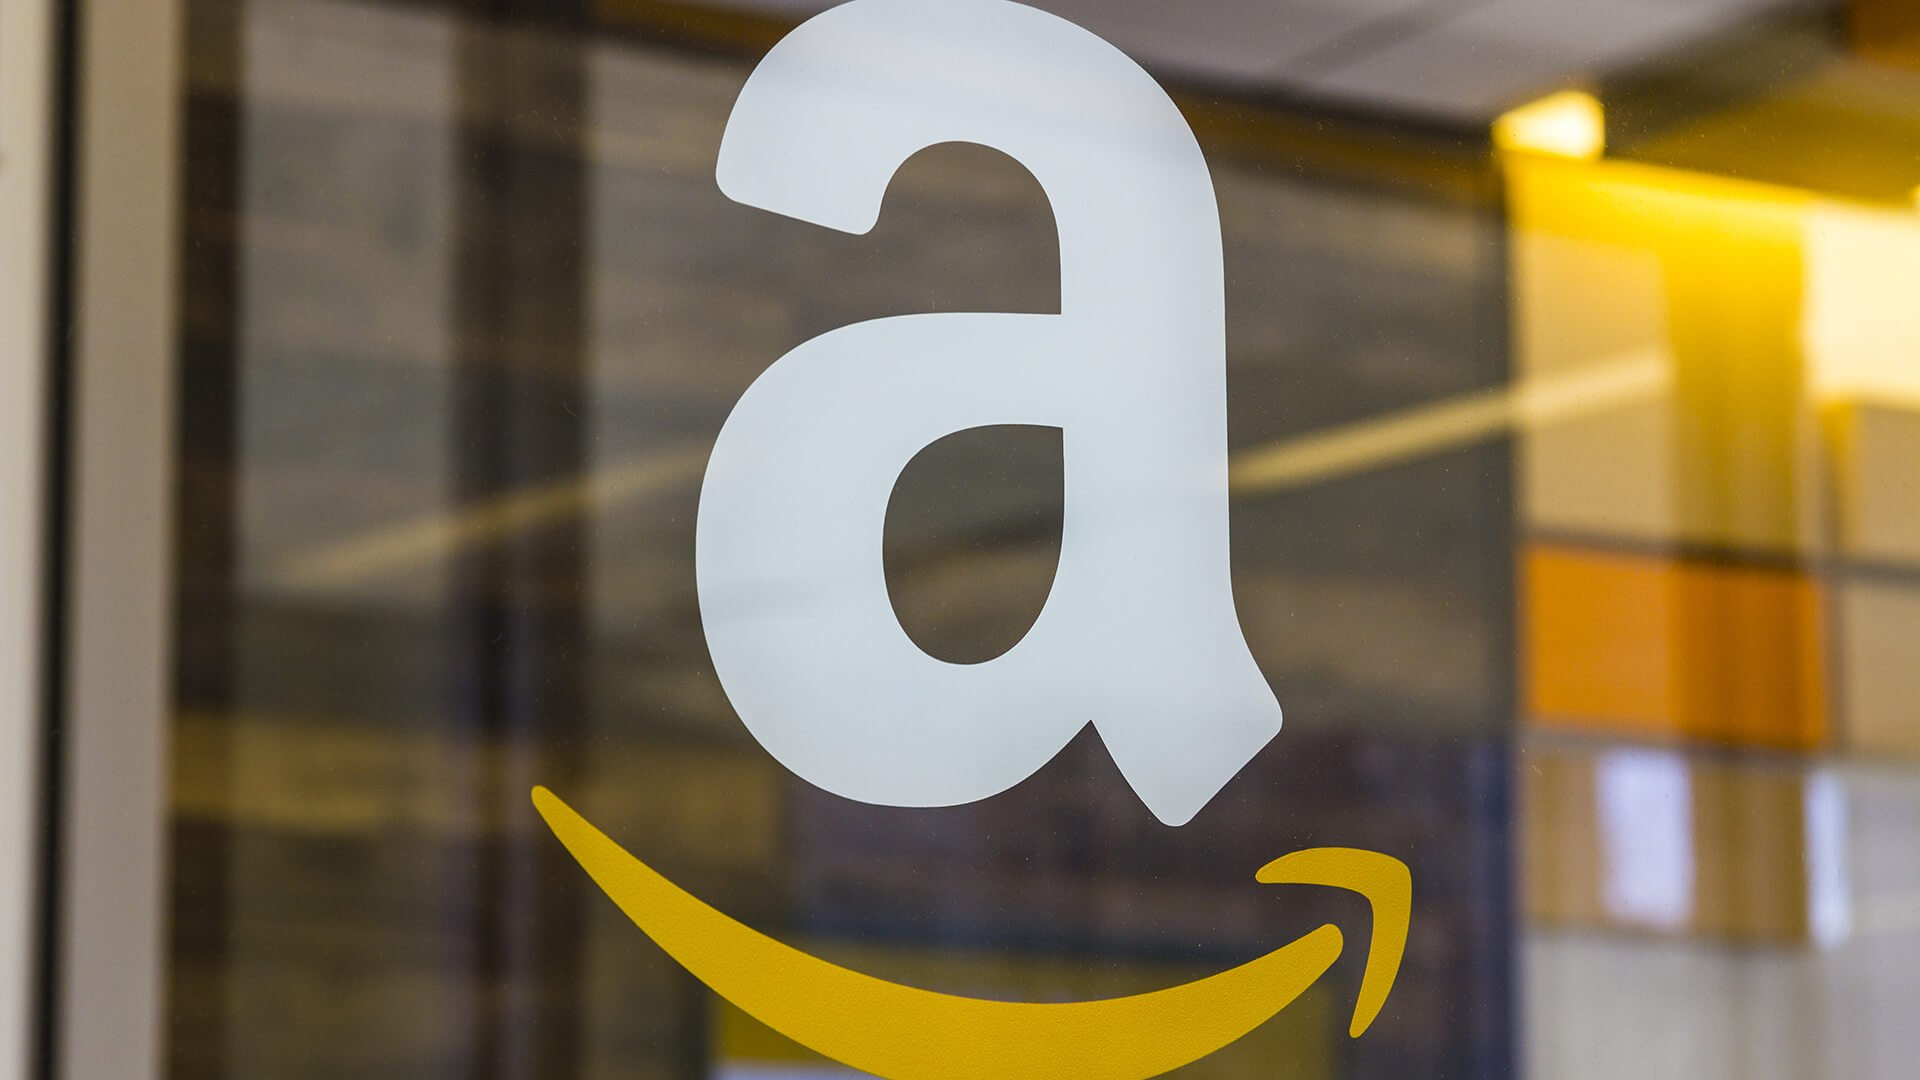 Amazon Q3 ad revenues surpass $1 billion, up roughly 2X from early 2016